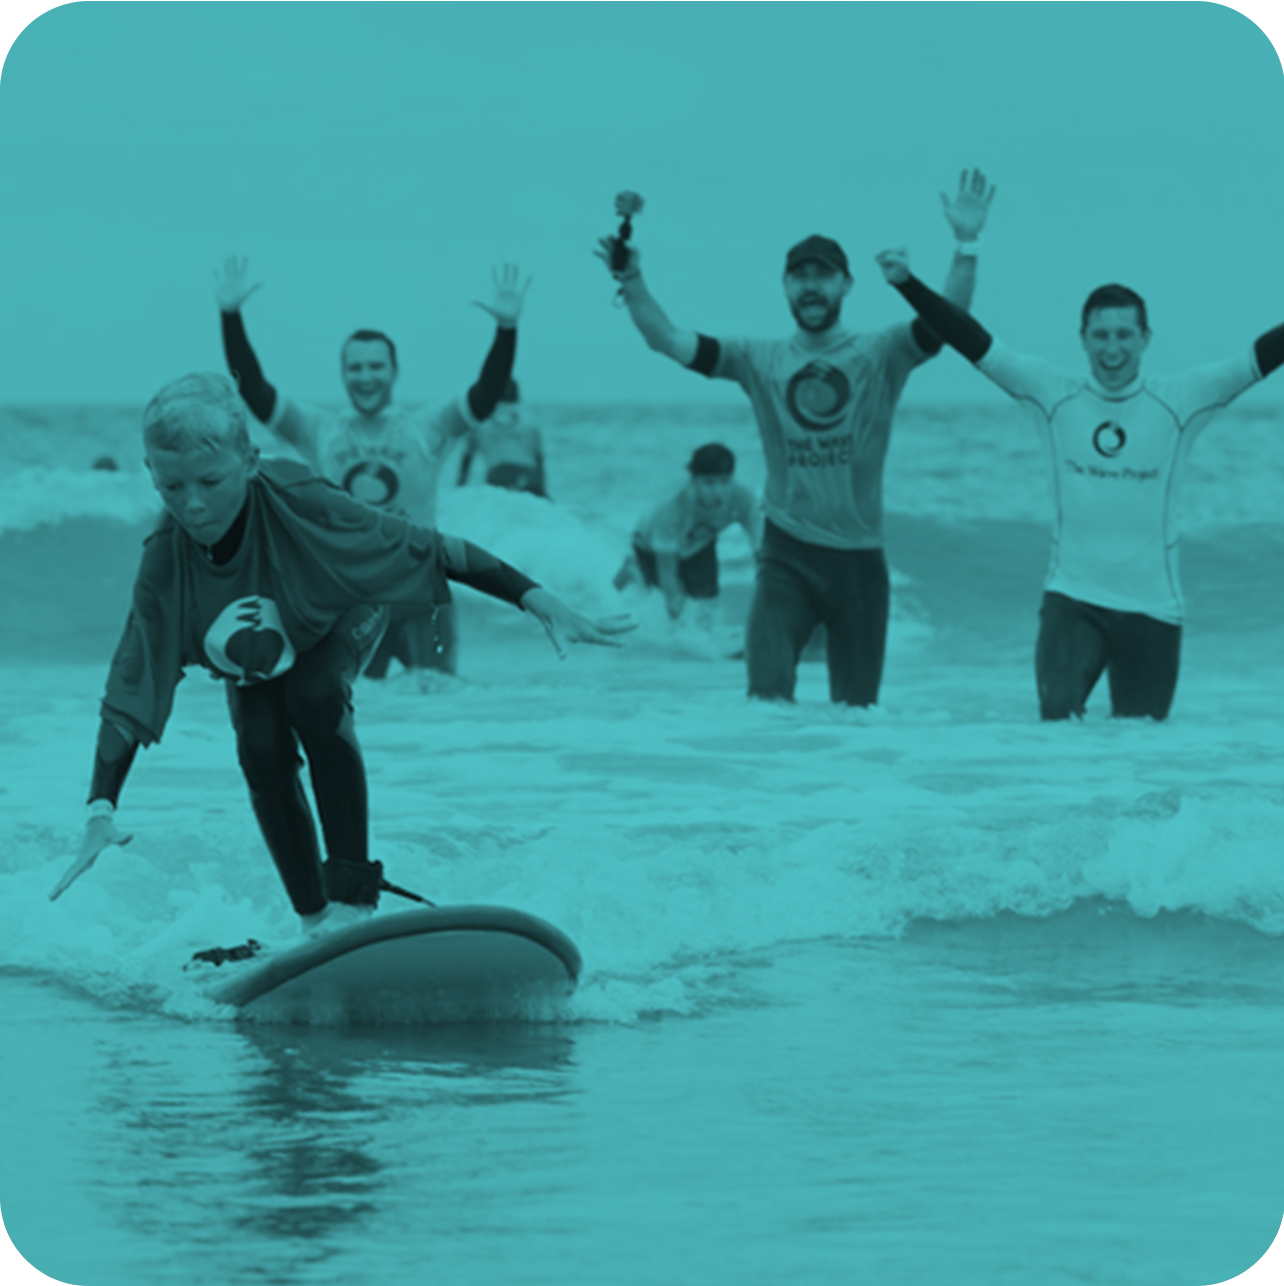 SURF THERAPY - International Surf Therapy Organization